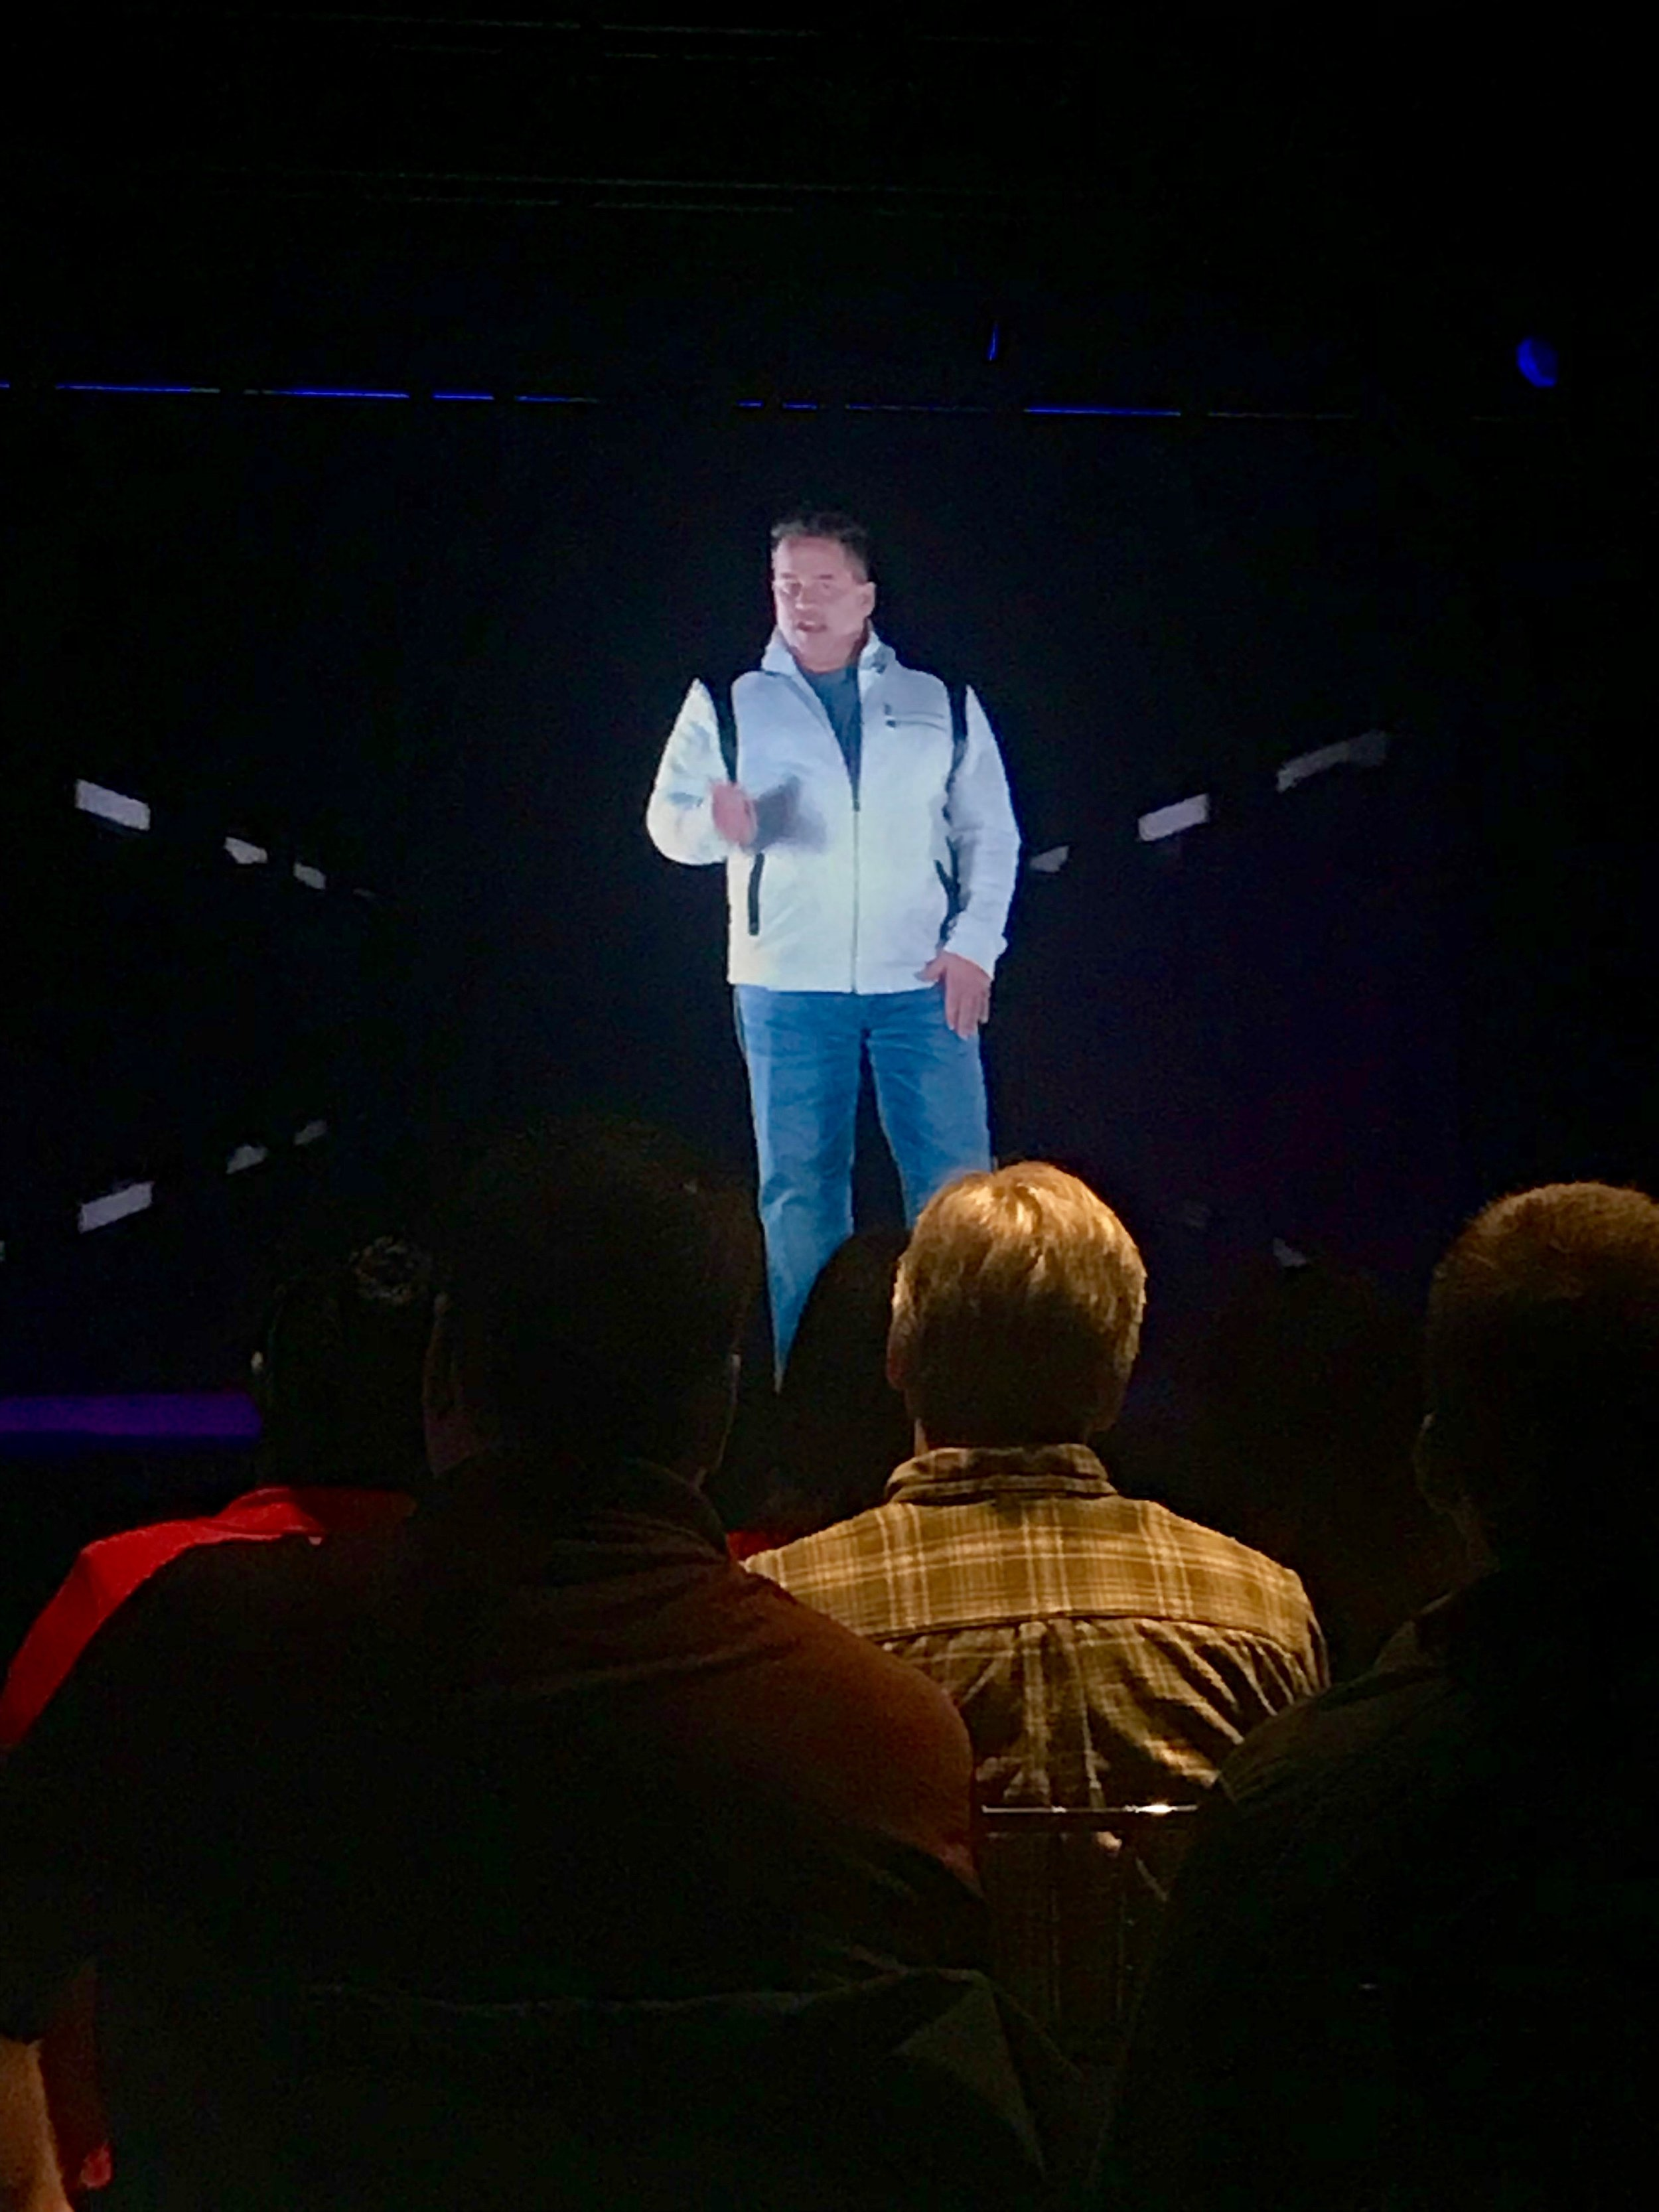 Illusionist Bobby Borbia showcasing virtual telepresence at our holographic theater in Cleveland, Ohio. Bobby could have been anywhere in the world.